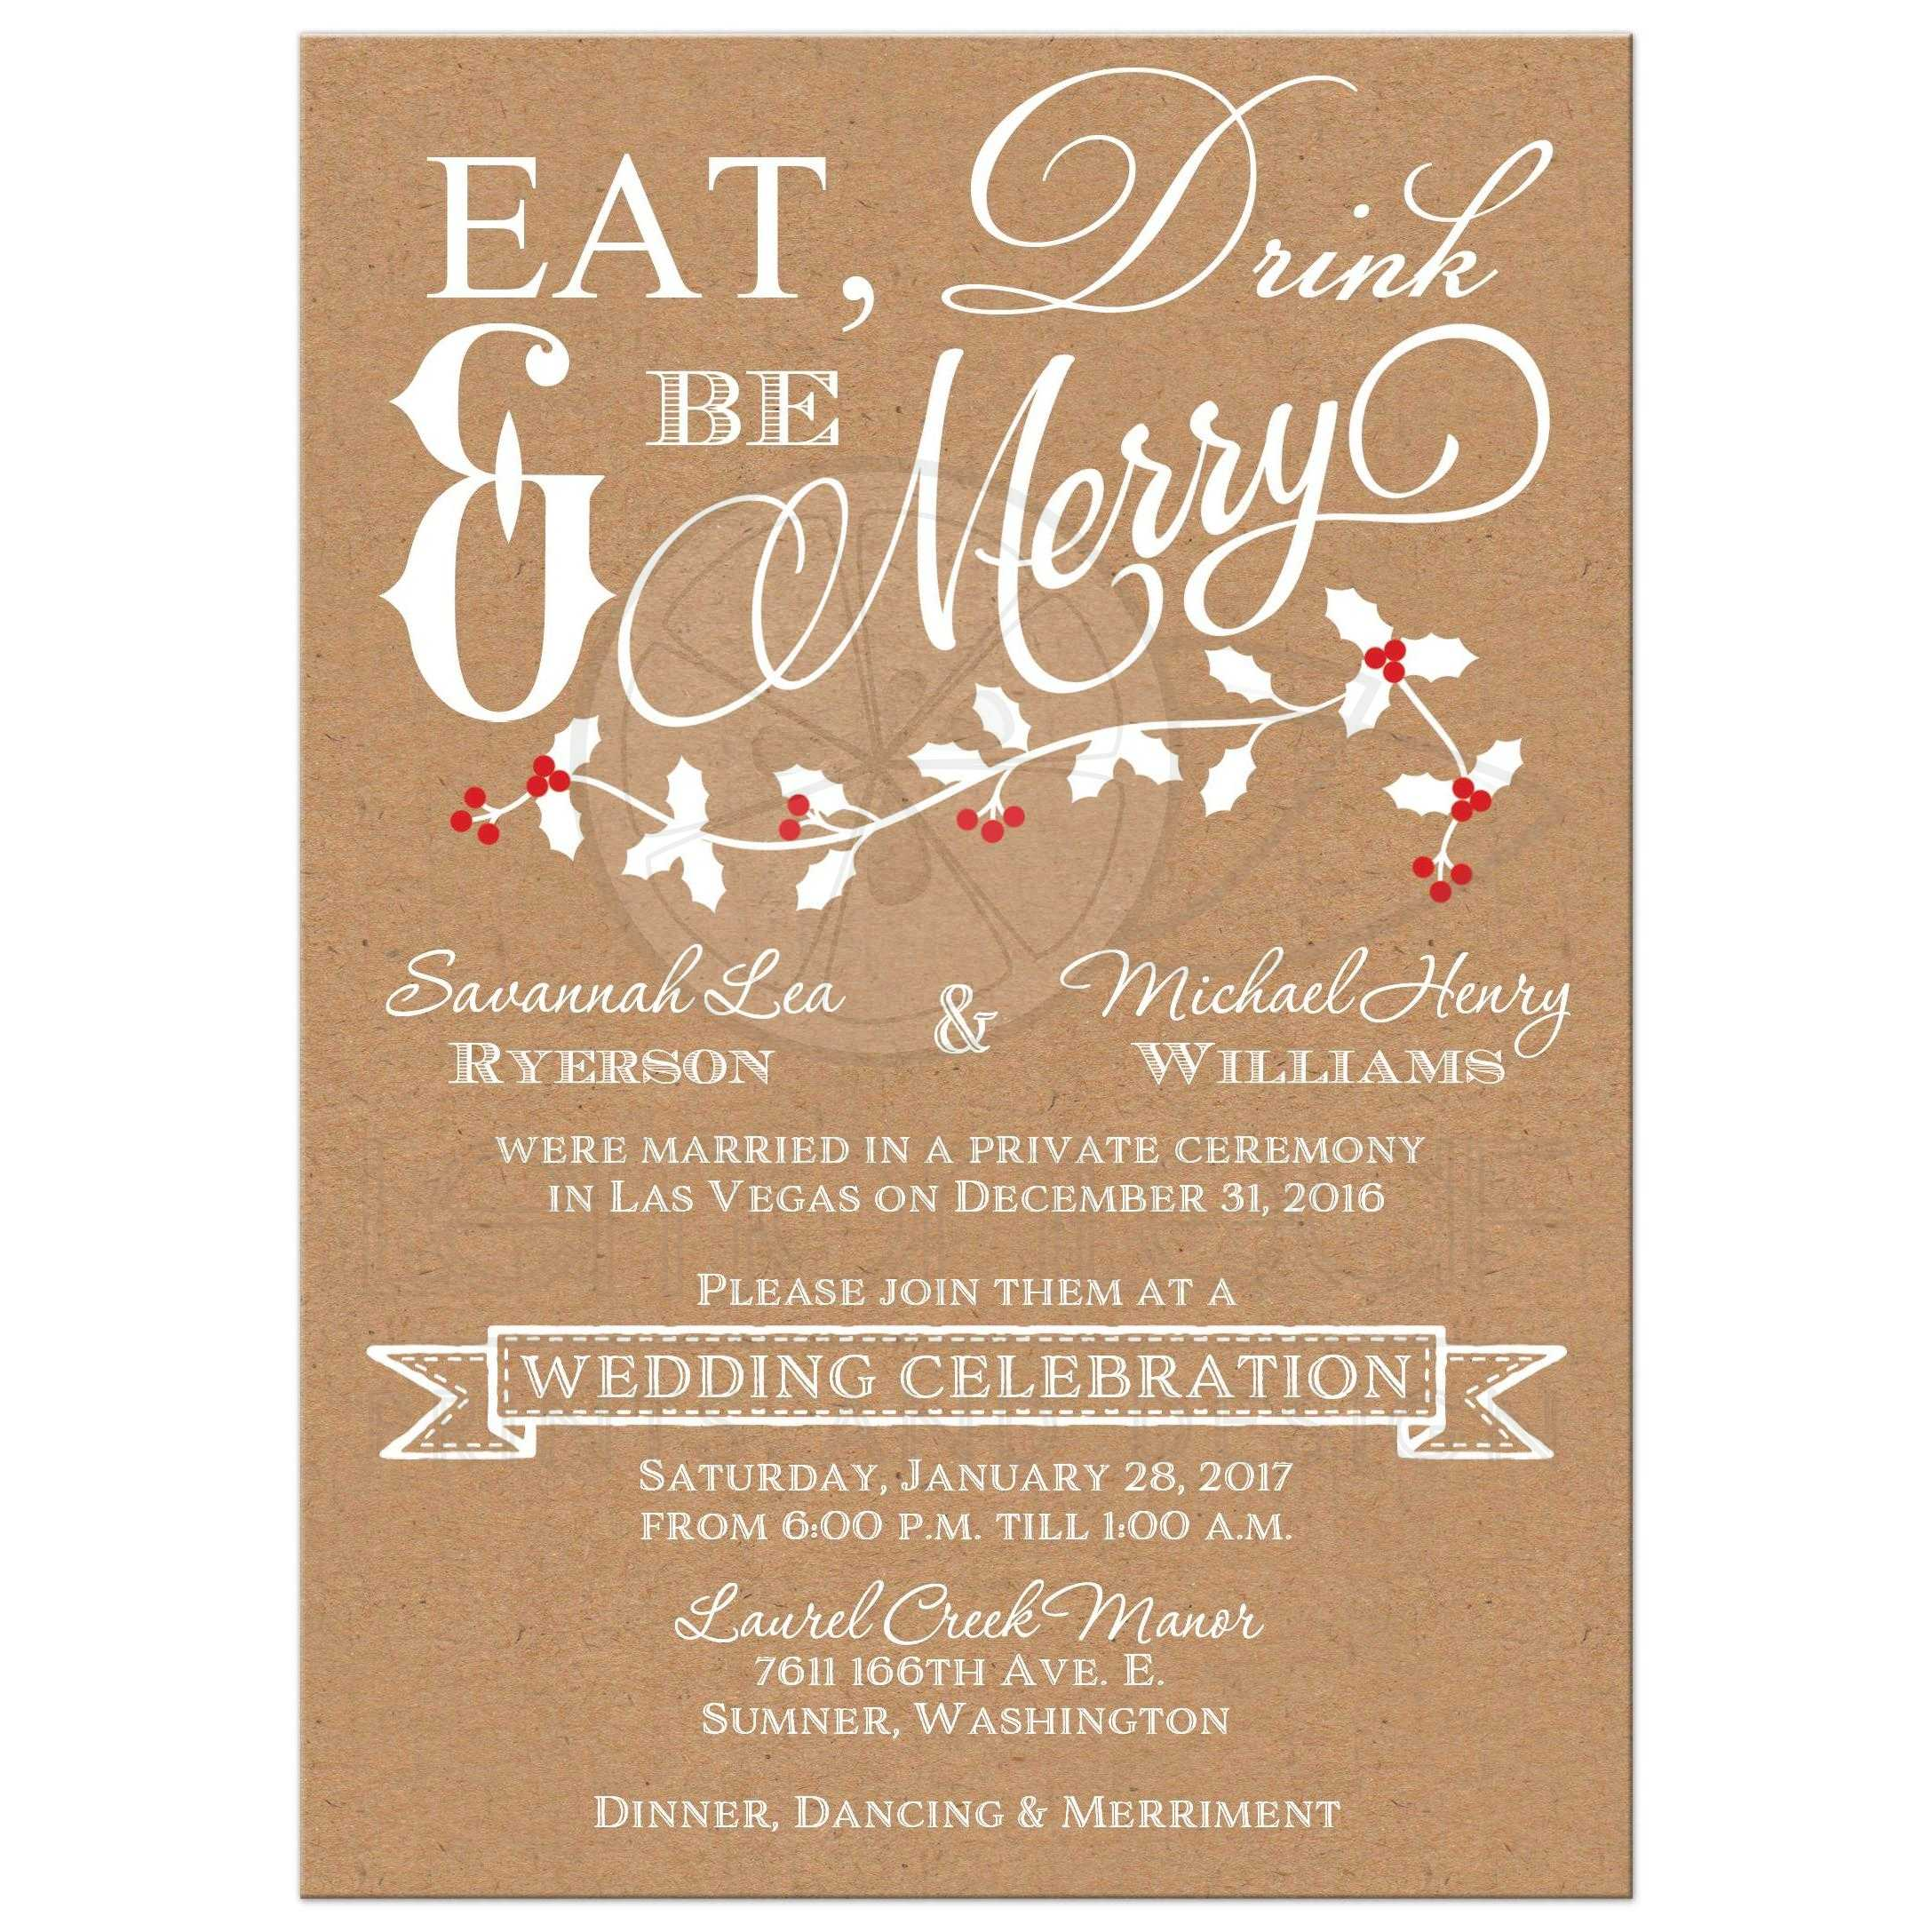 Reception invitations akbaeenw winter wedding reception invitation eat drink be merry faux stopboris